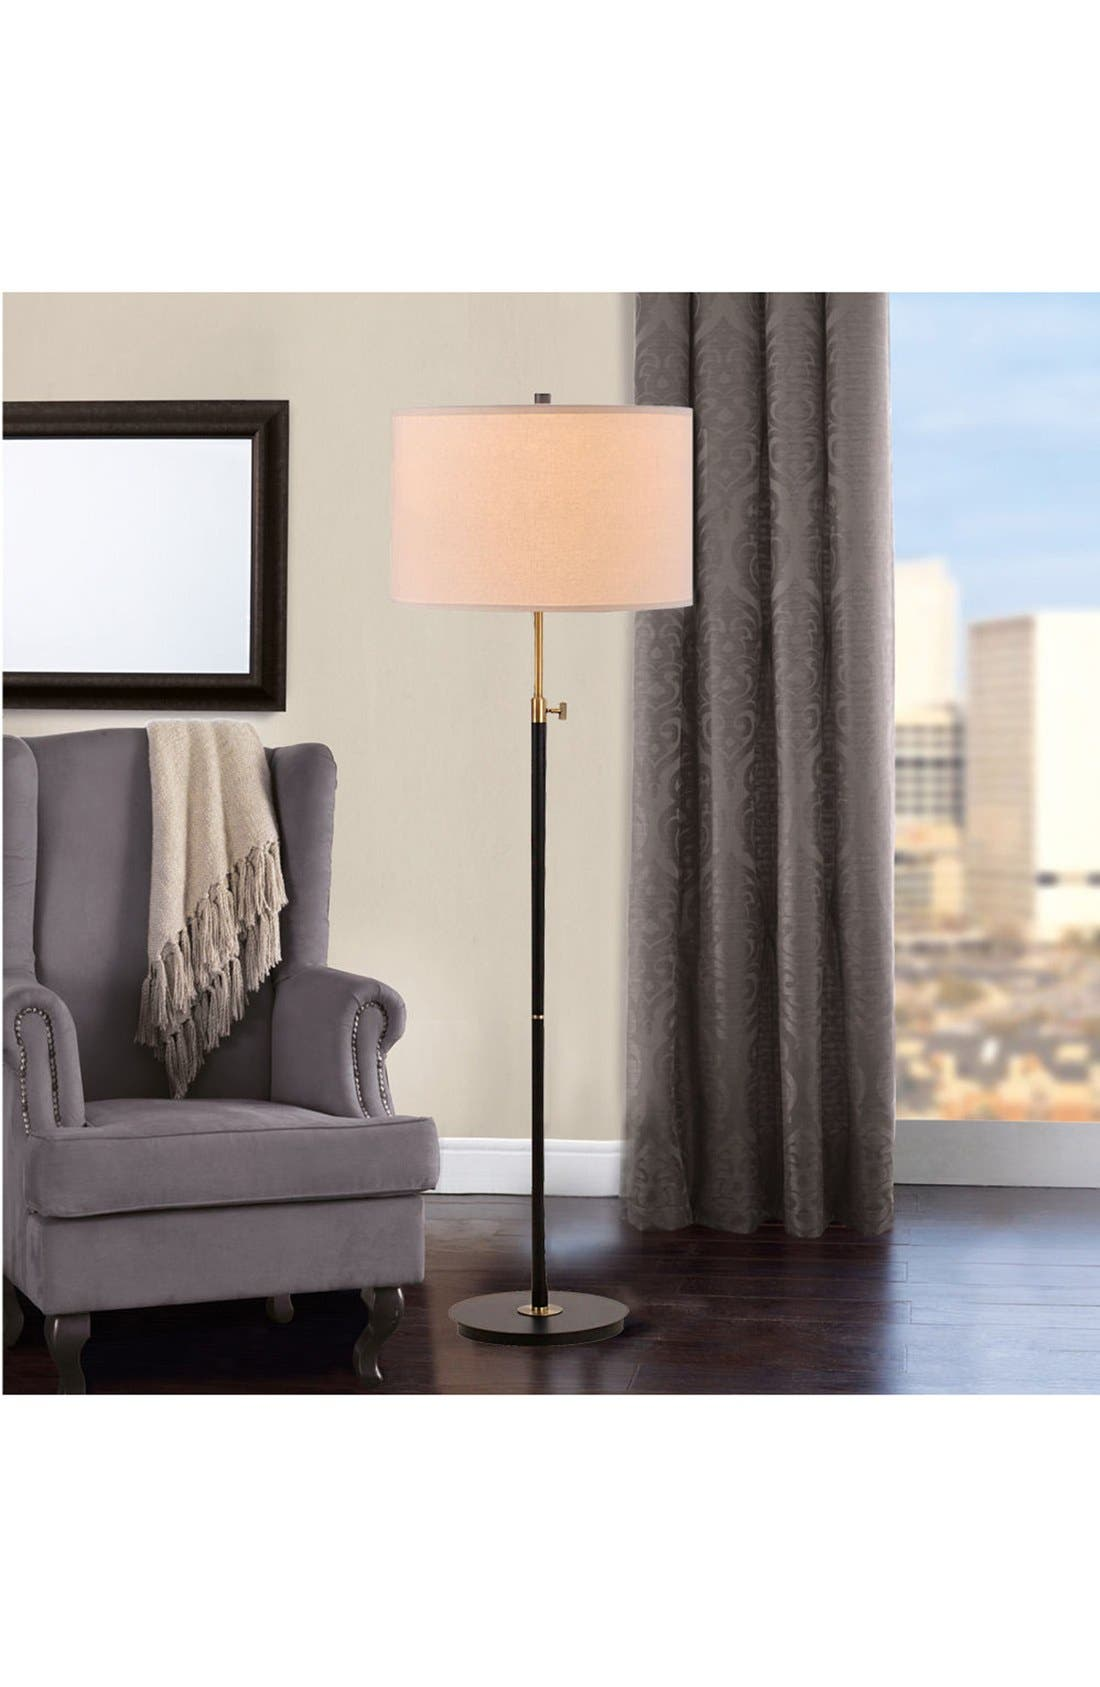 JAlexander Adjustable Floor Lamp,                             Alternate thumbnail 2, color,                             Black